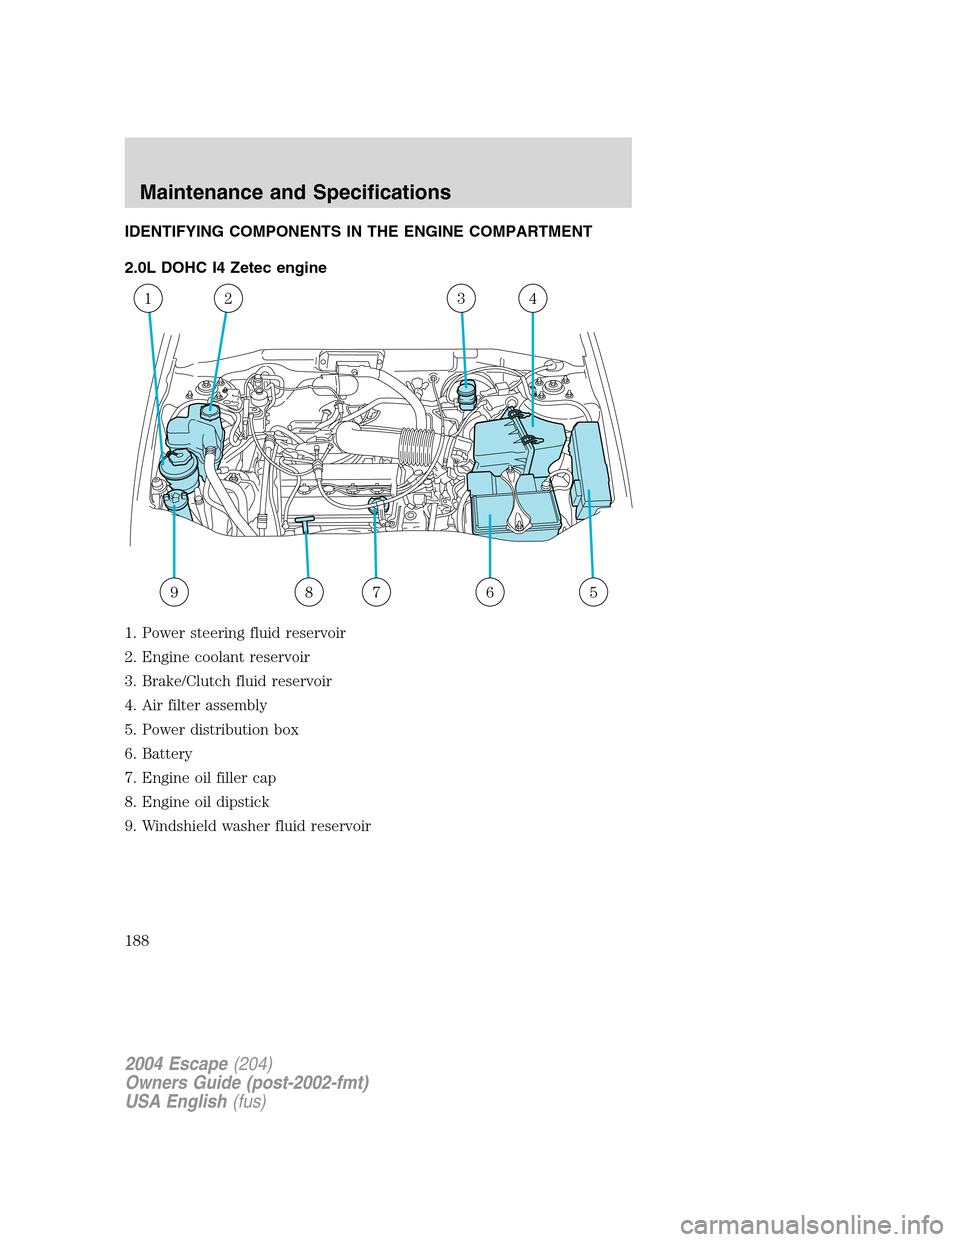 Oil Filter Ford Escape 2004 1g Owners Manual 2002 2 0 Zetec Engine Diagram G Page 188 Identifying Components In The Compartment 20l Dohc I4